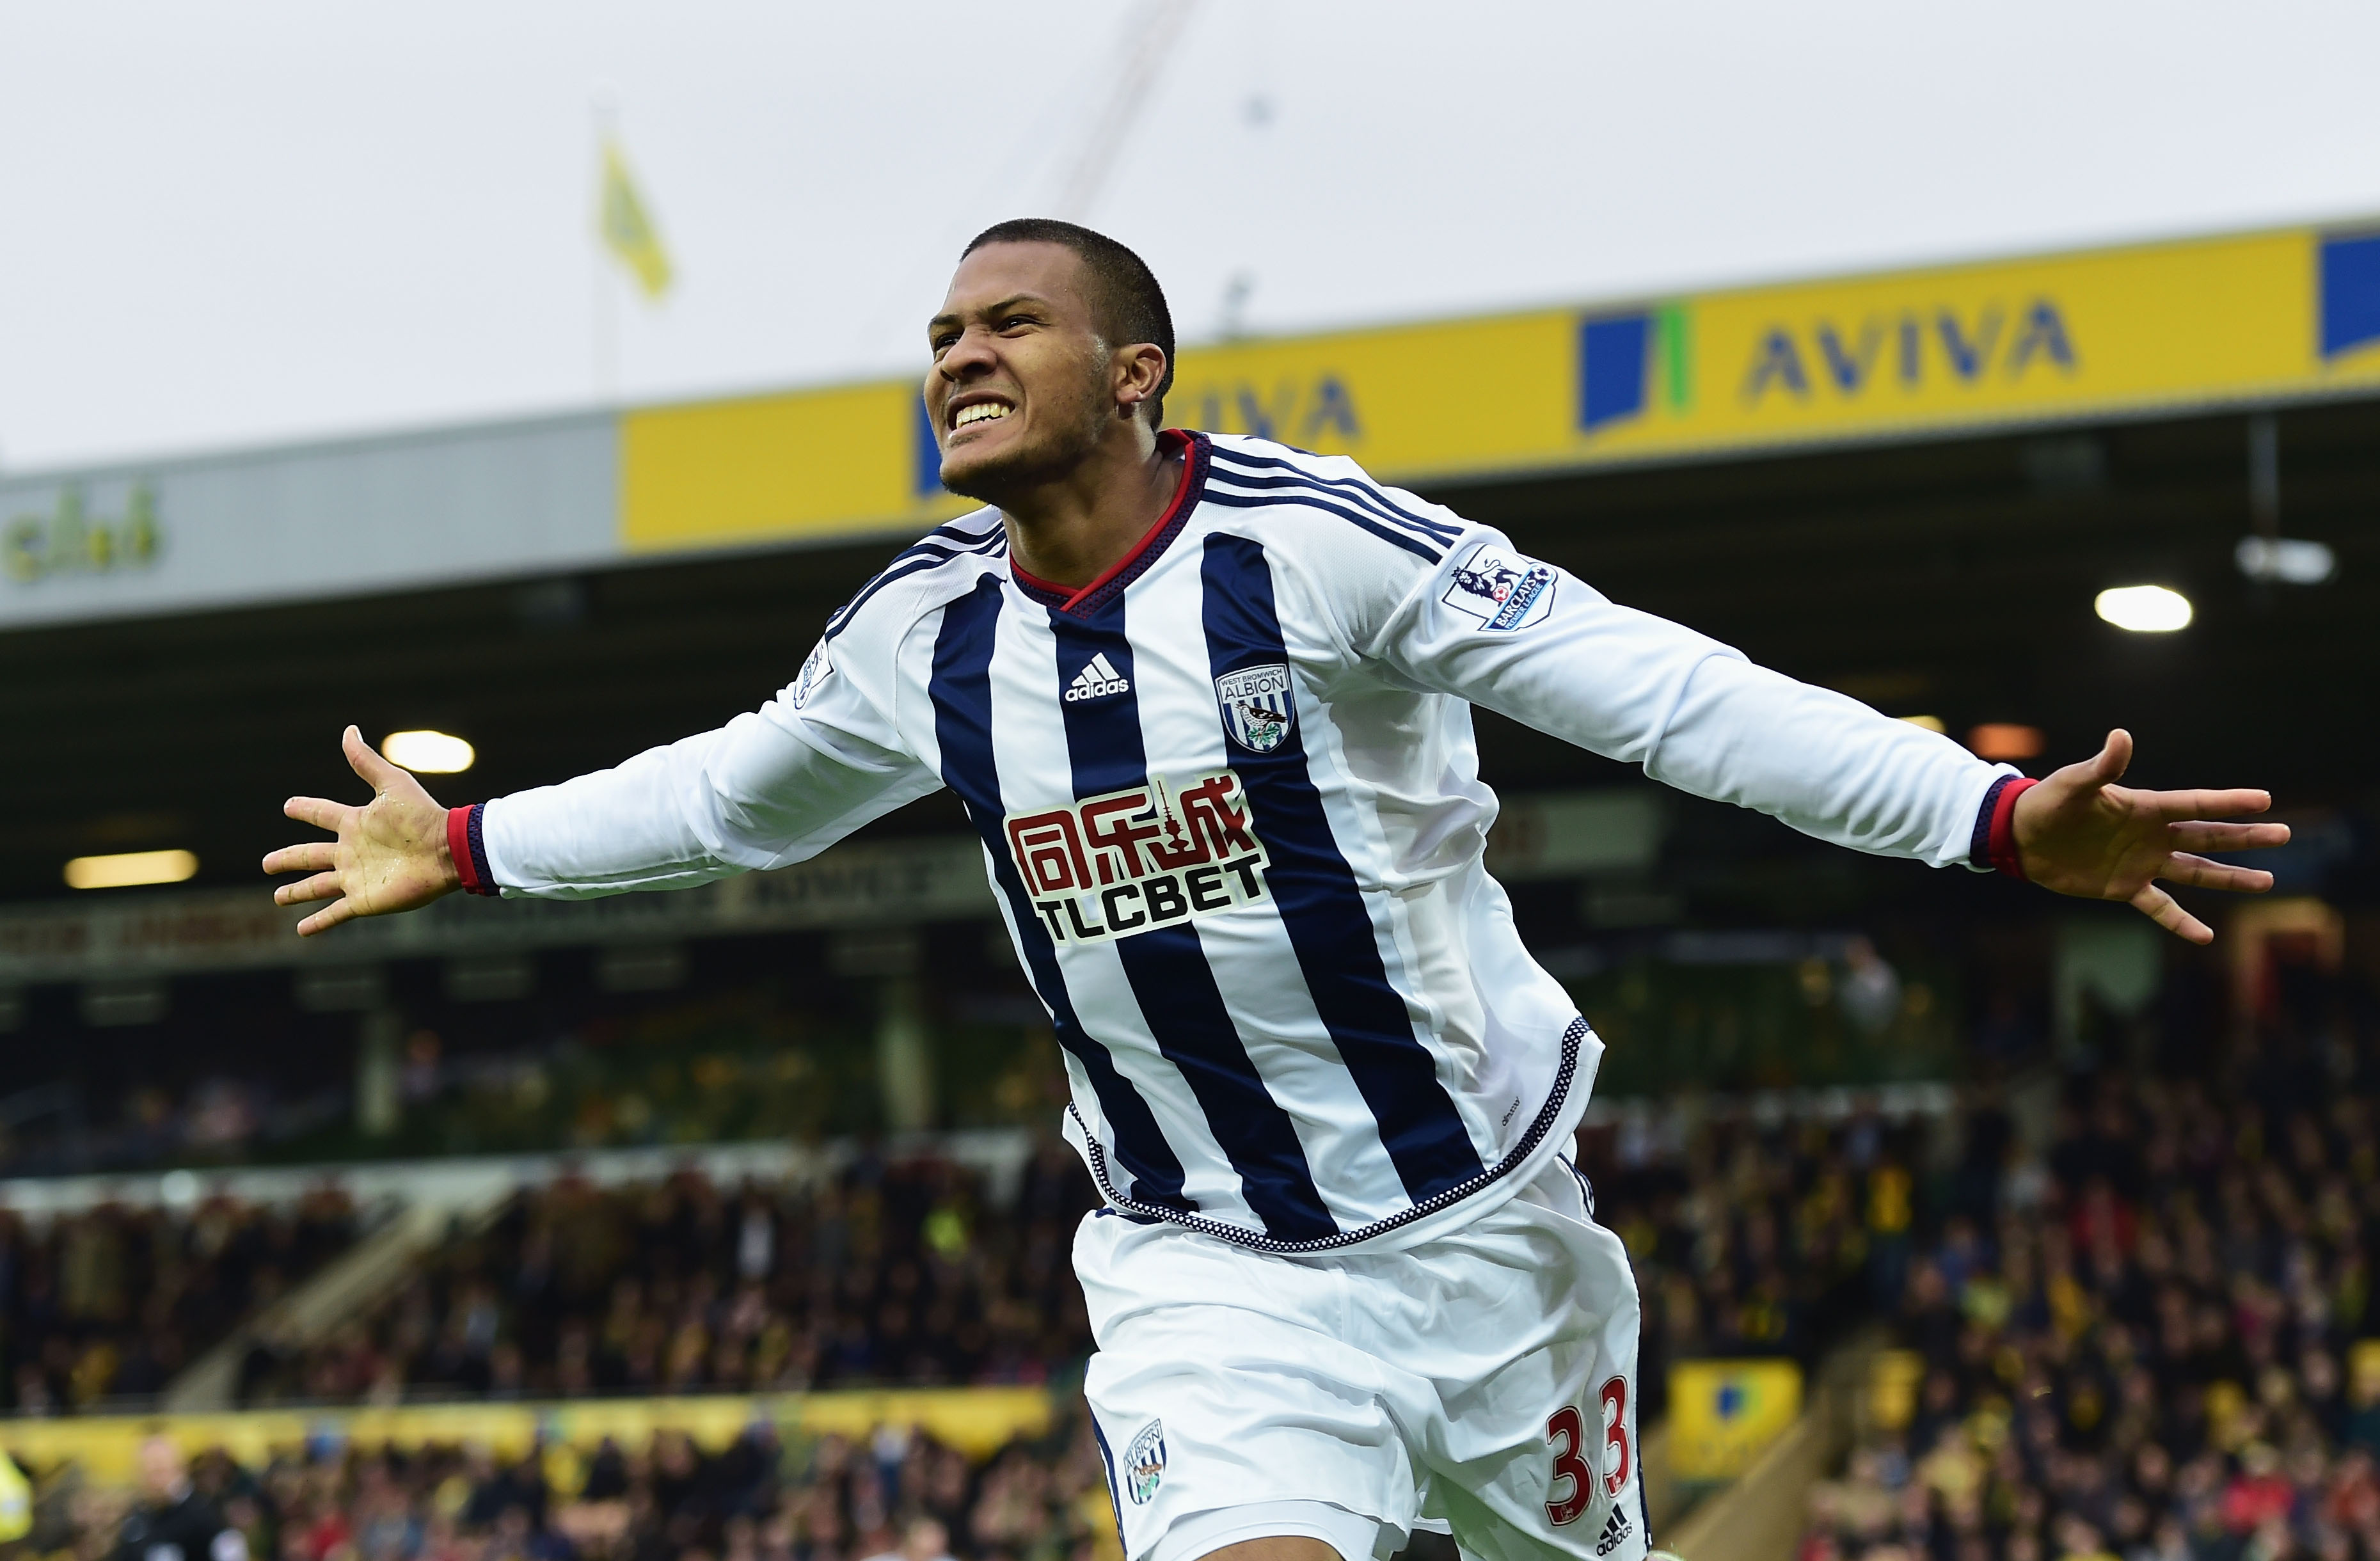 NORWICH, ENGLAND - OCTOBER 24: Salomon Rondon of West Bromwich Albion celebrates scoring his team's first goal during the Barclays Premier League match between Norwich City and West Bromwich Albion at Carrow Road on October 24, 2015 in Norwich, England. (Photo by Alex Broadway/Getty Images)